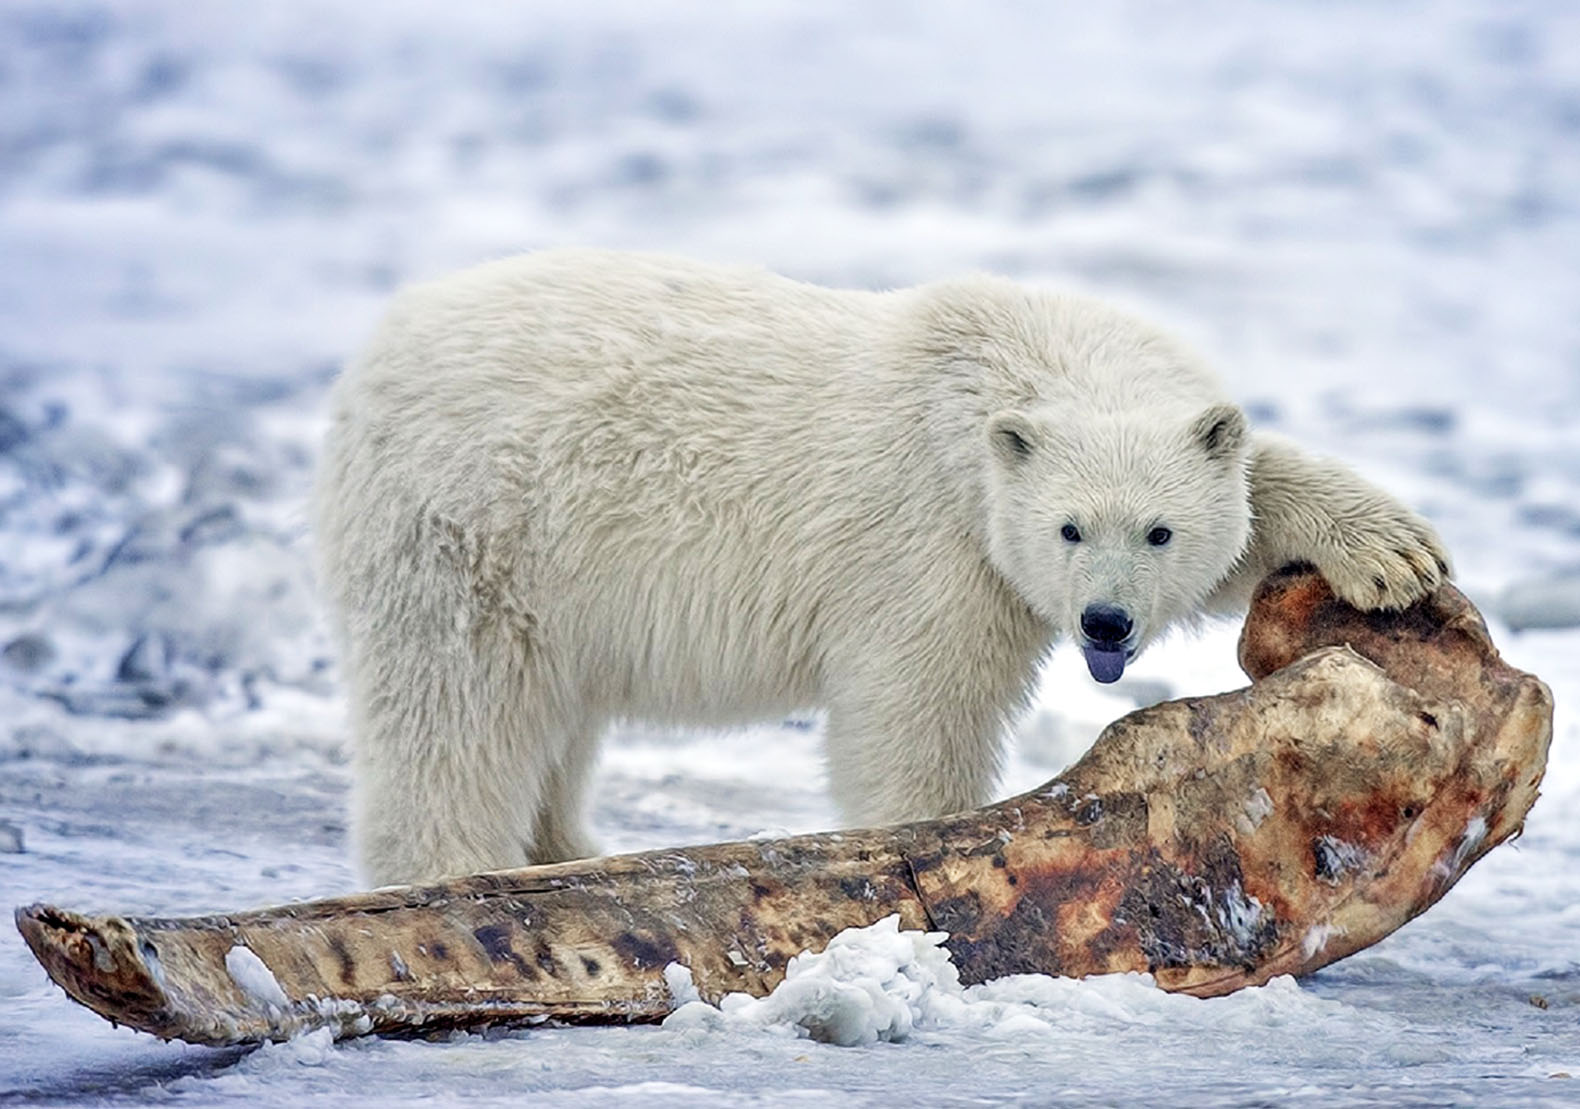 Pizzly bears are appearing in the rapidly warming Arctic